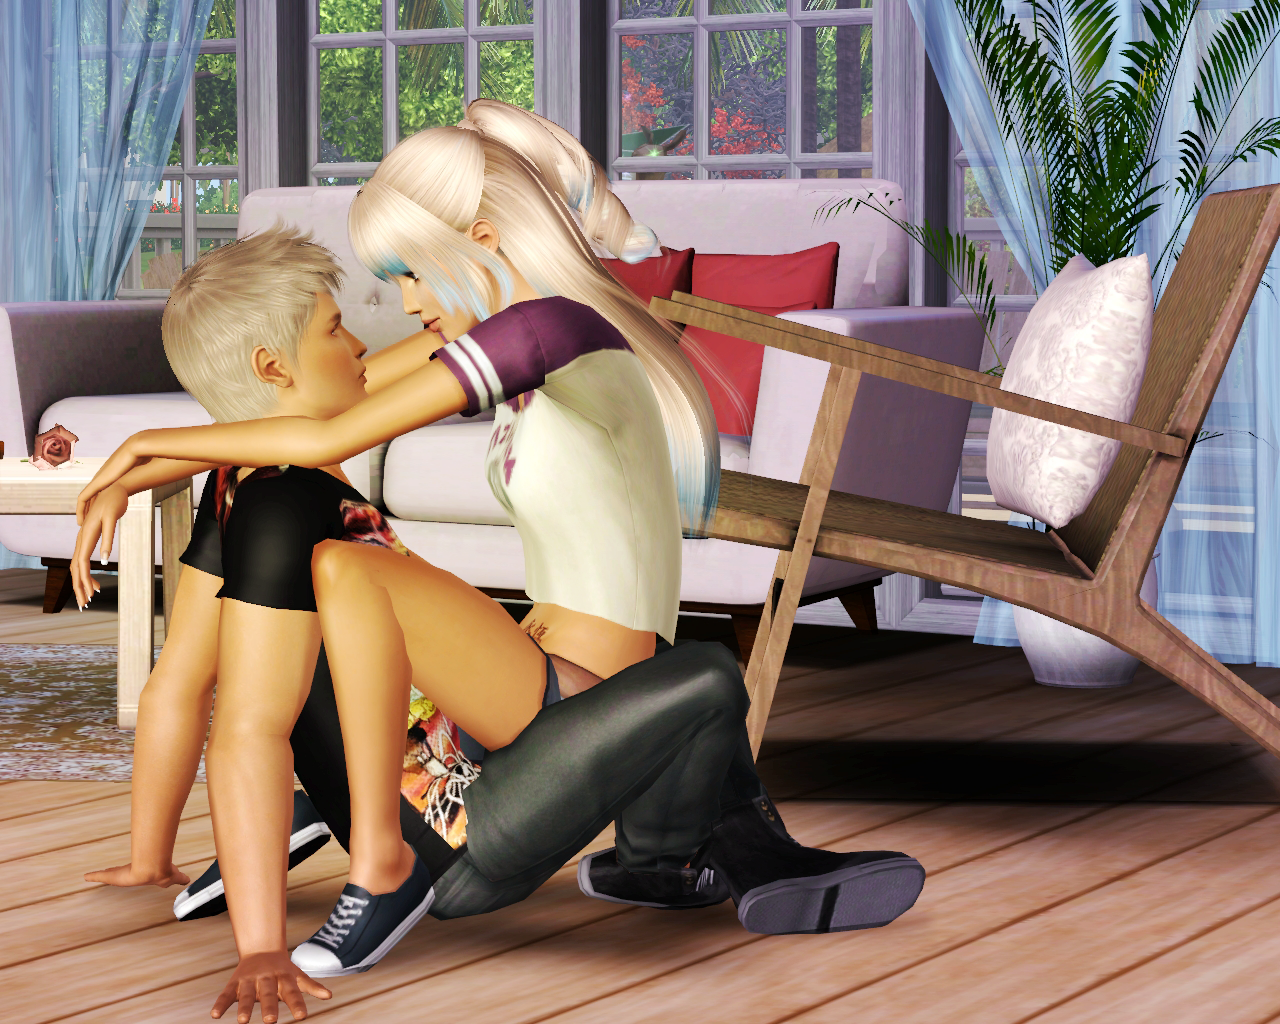 Sims3 lesbian poses smut picture